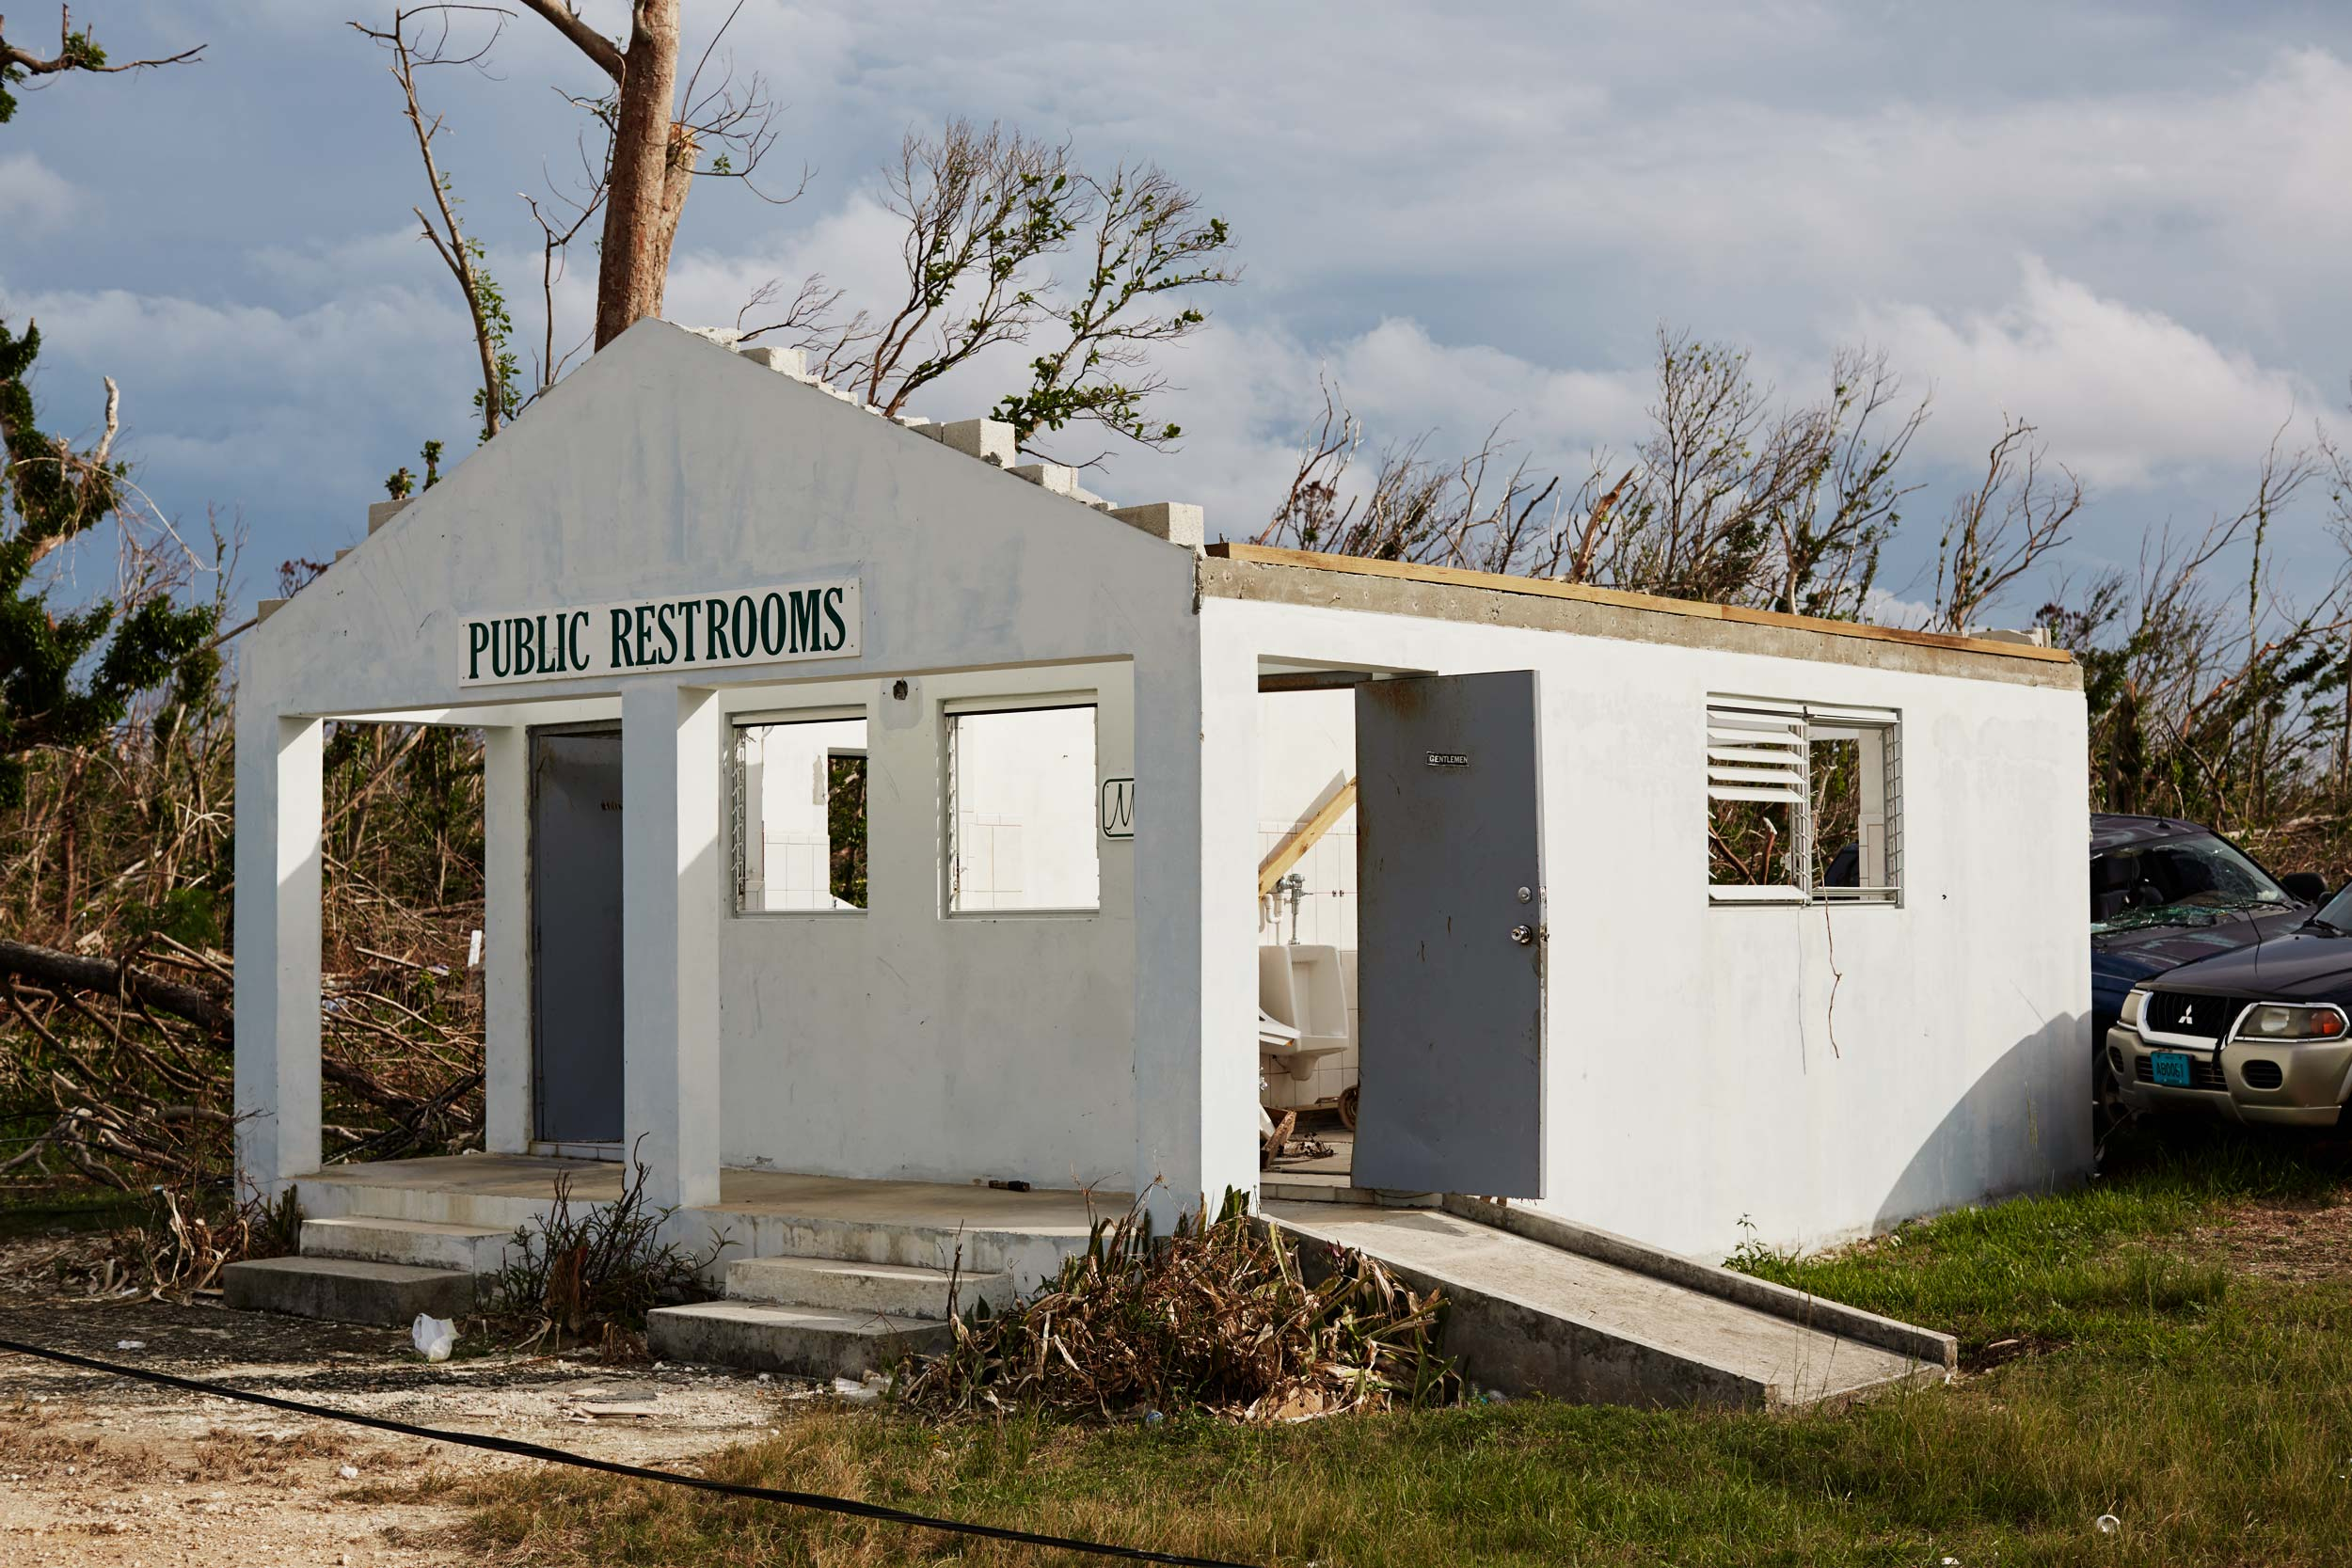 12-H911-BAHAMAS-RESTROOMS